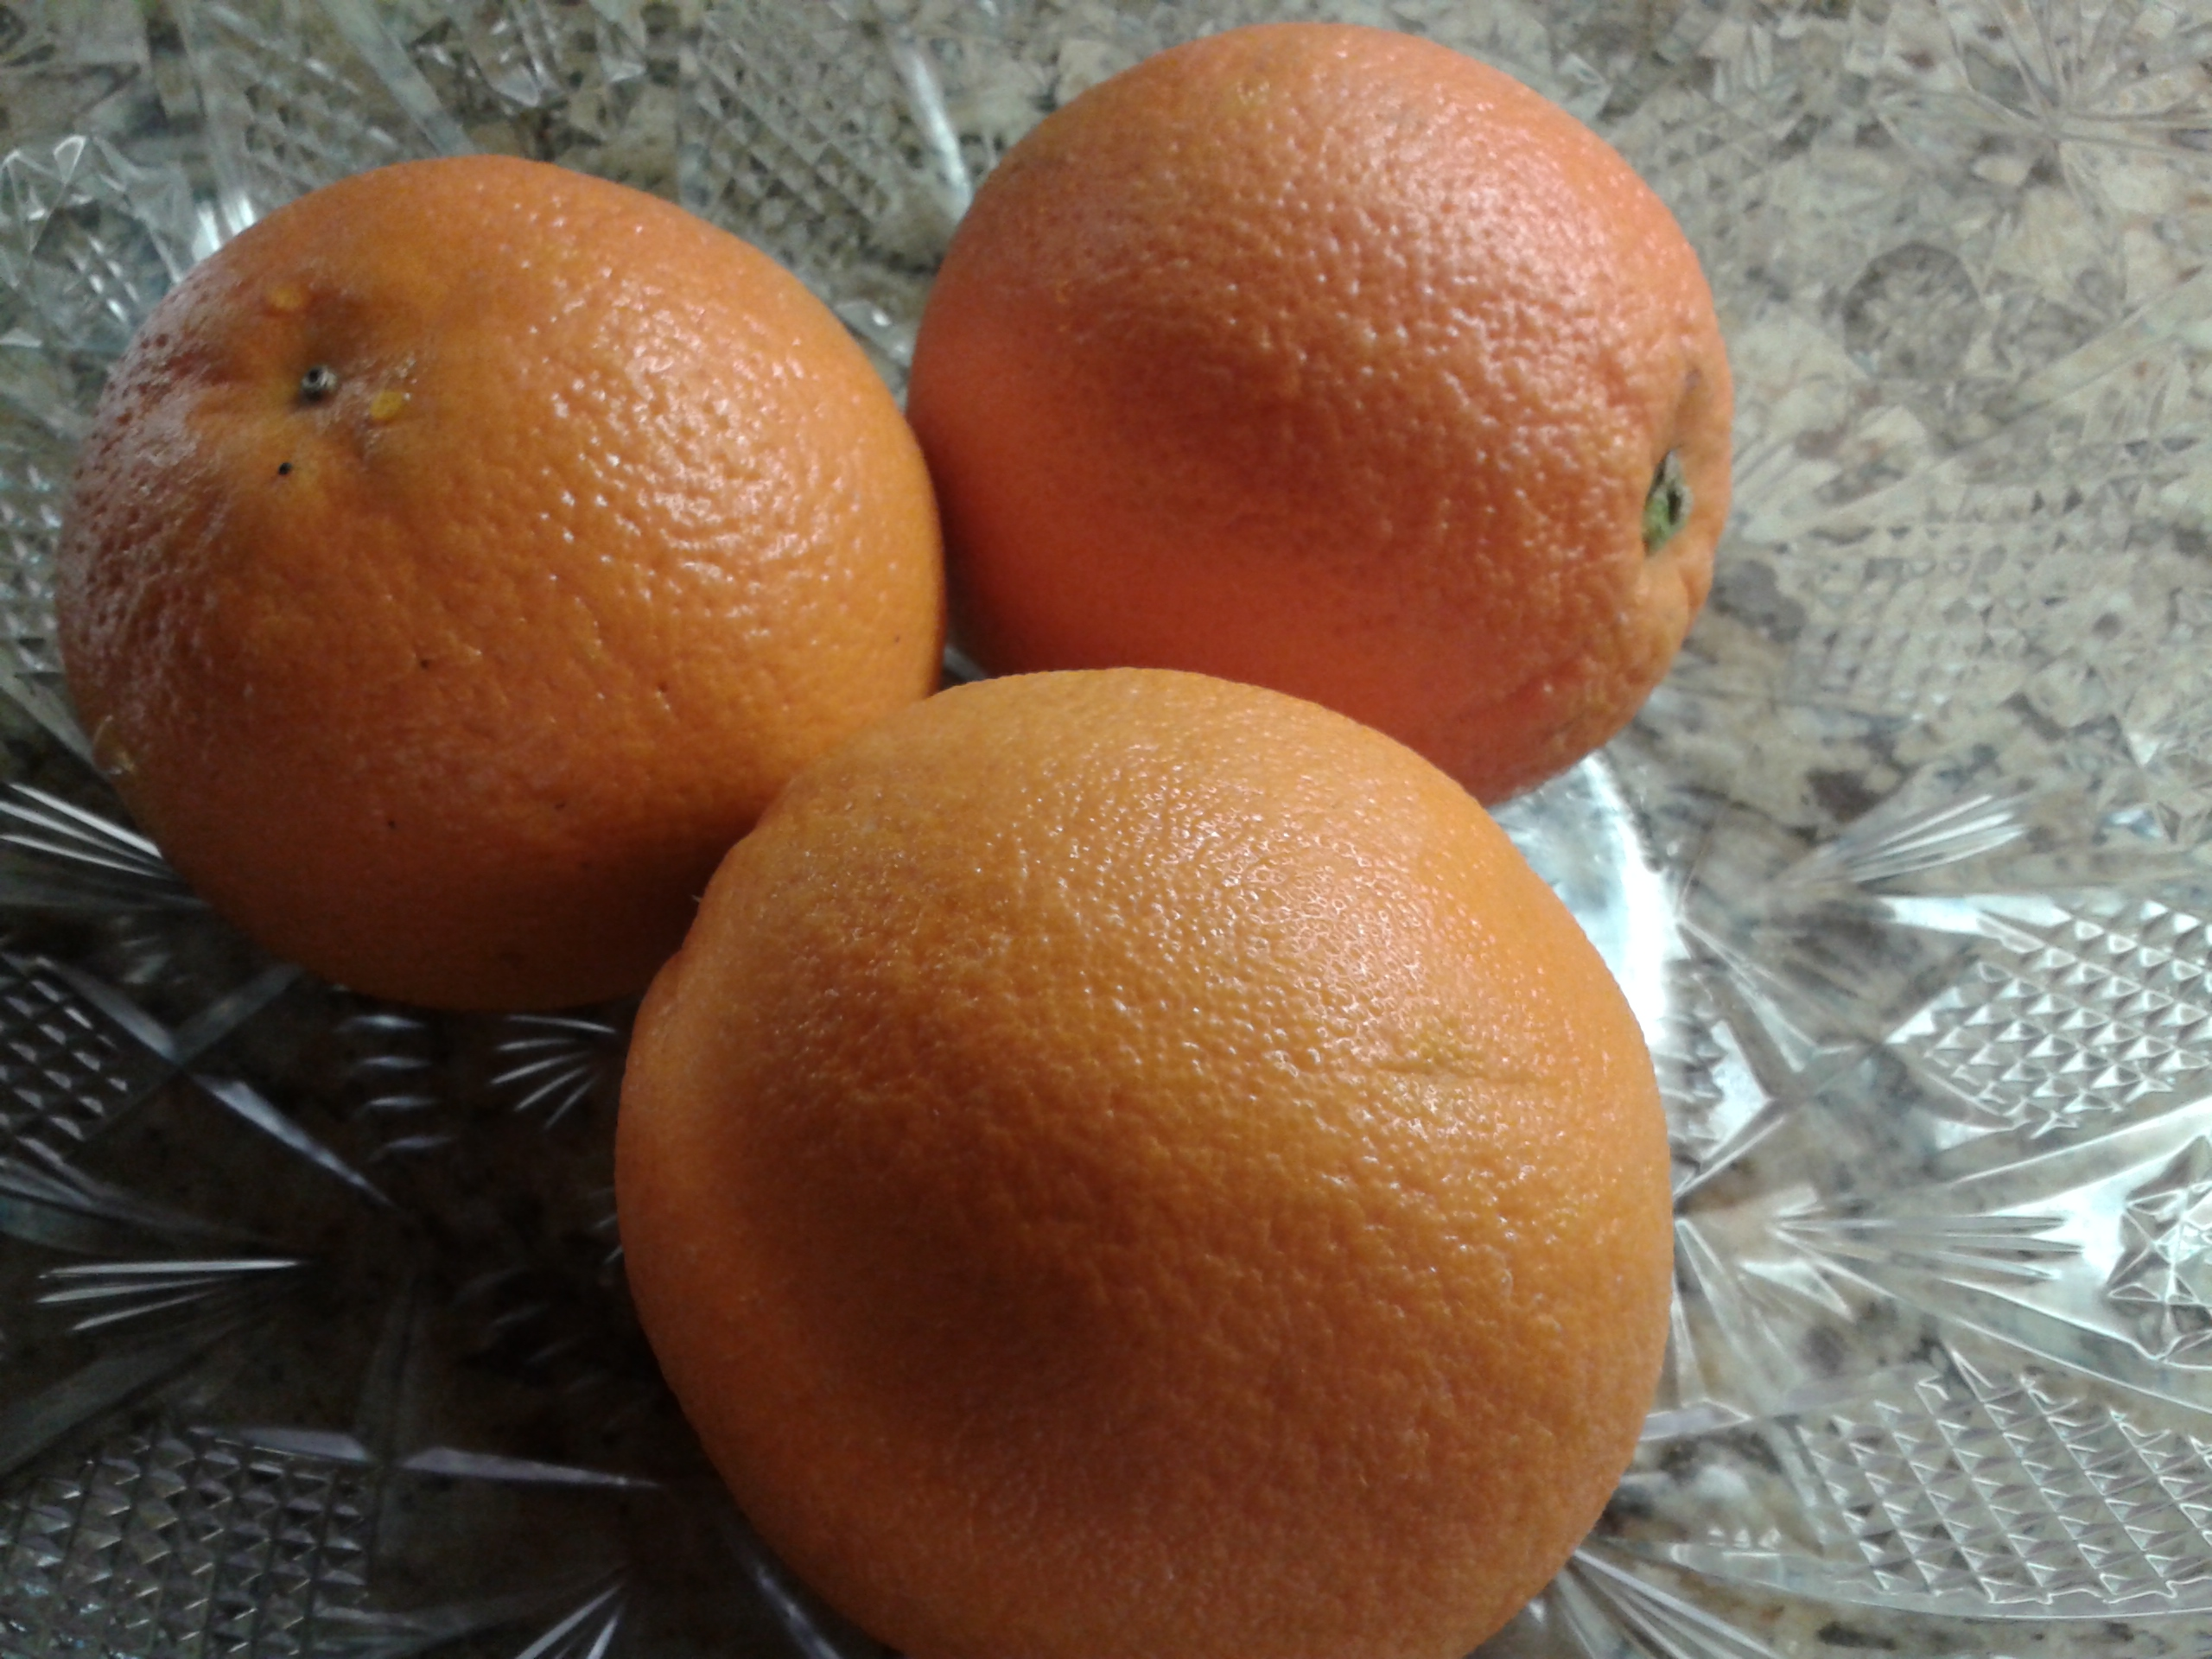 Picture of Preparing Your Orange and Supplies